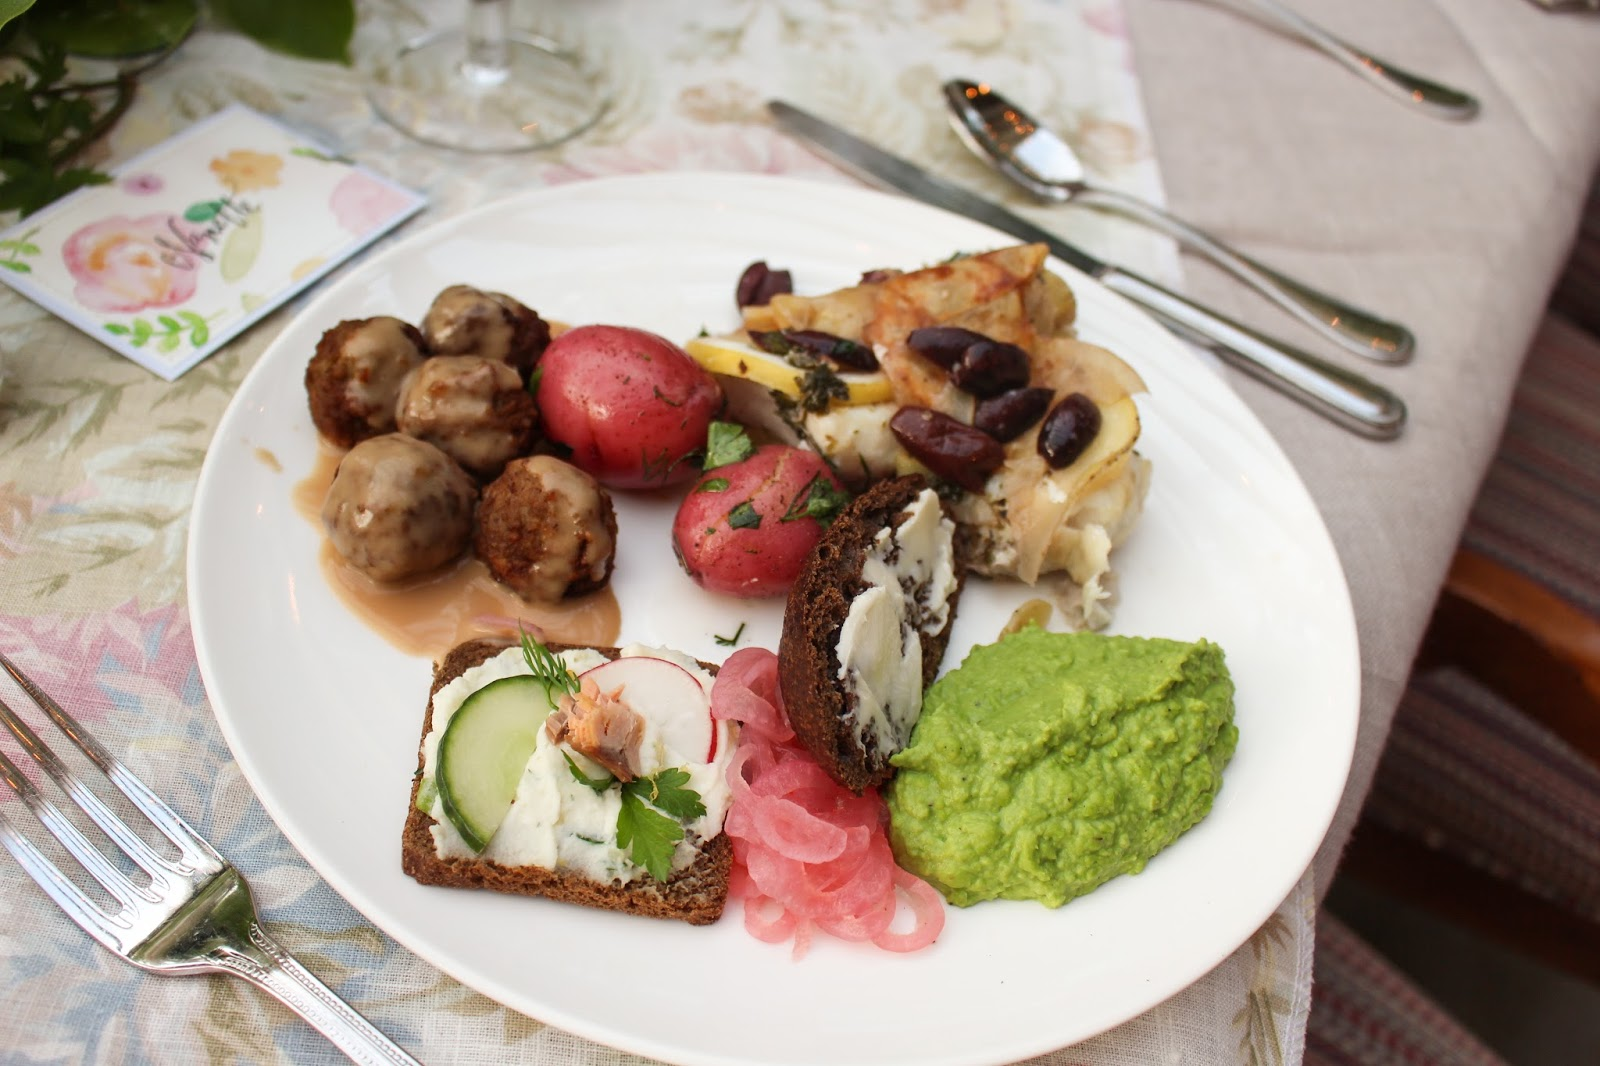 Midsummer Party - A Fragrant & Tasty Soirée - Aimee Ferre